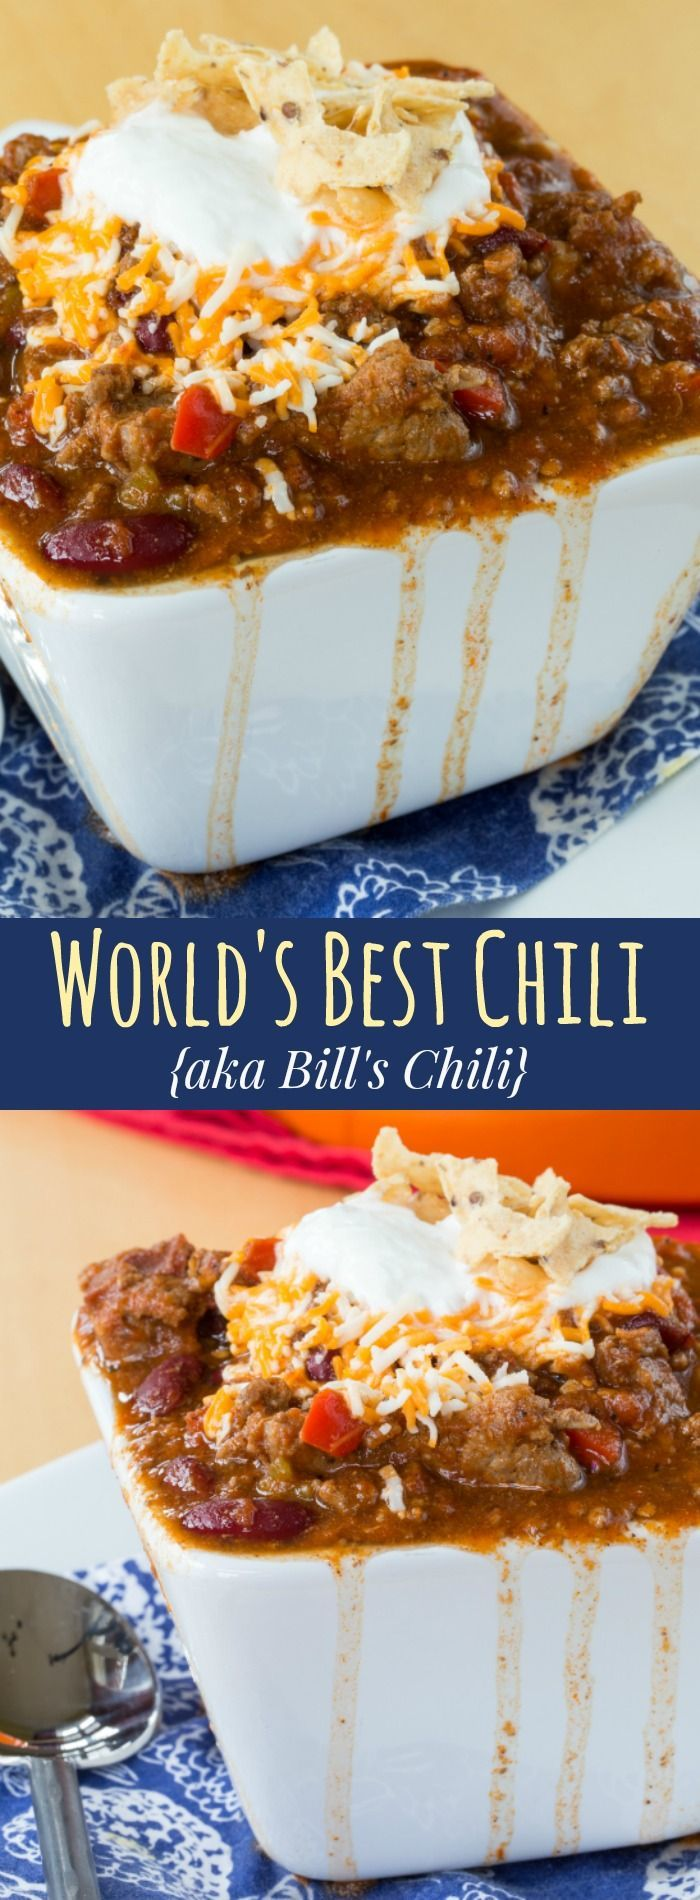 Bill's Chili -the World's Best Chili recipe with beef, bacon, and just the right amount of spice.